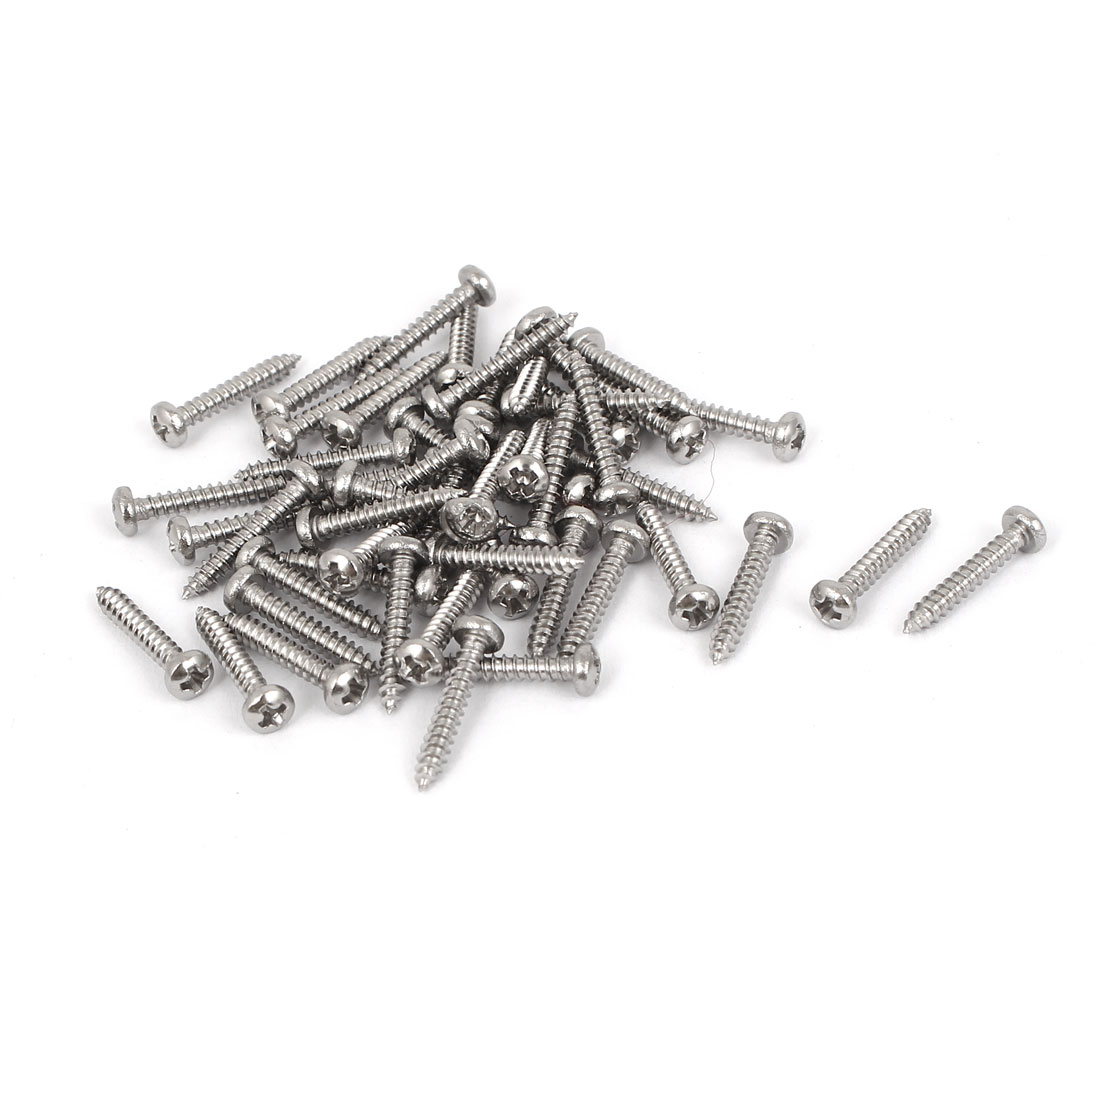 M2.2x13mm Stainless Steel Phillips Round Pan Head Self Tapping Screws 50pcs